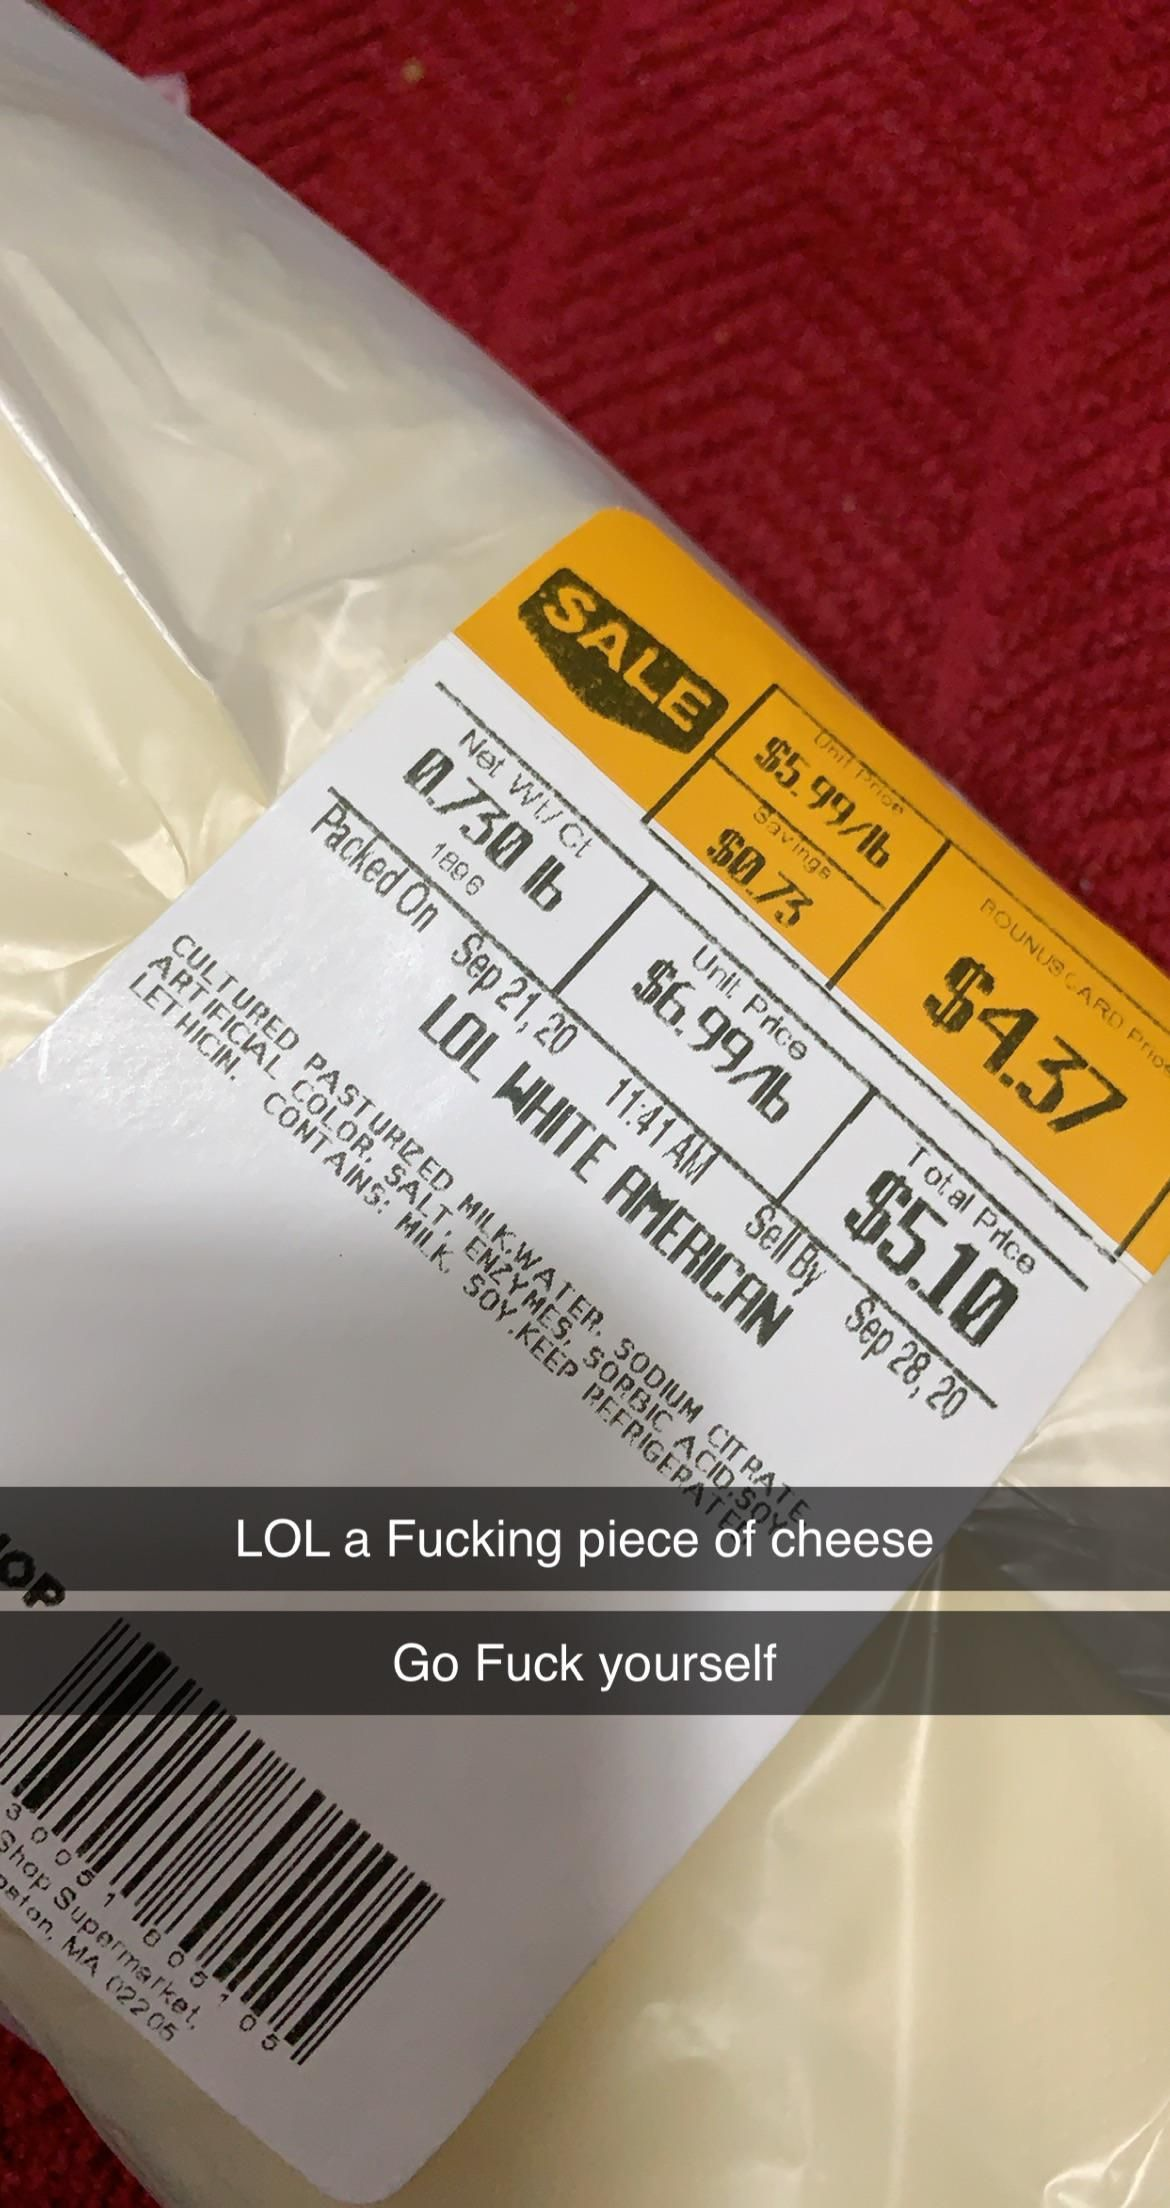 Got called out by deli cheese